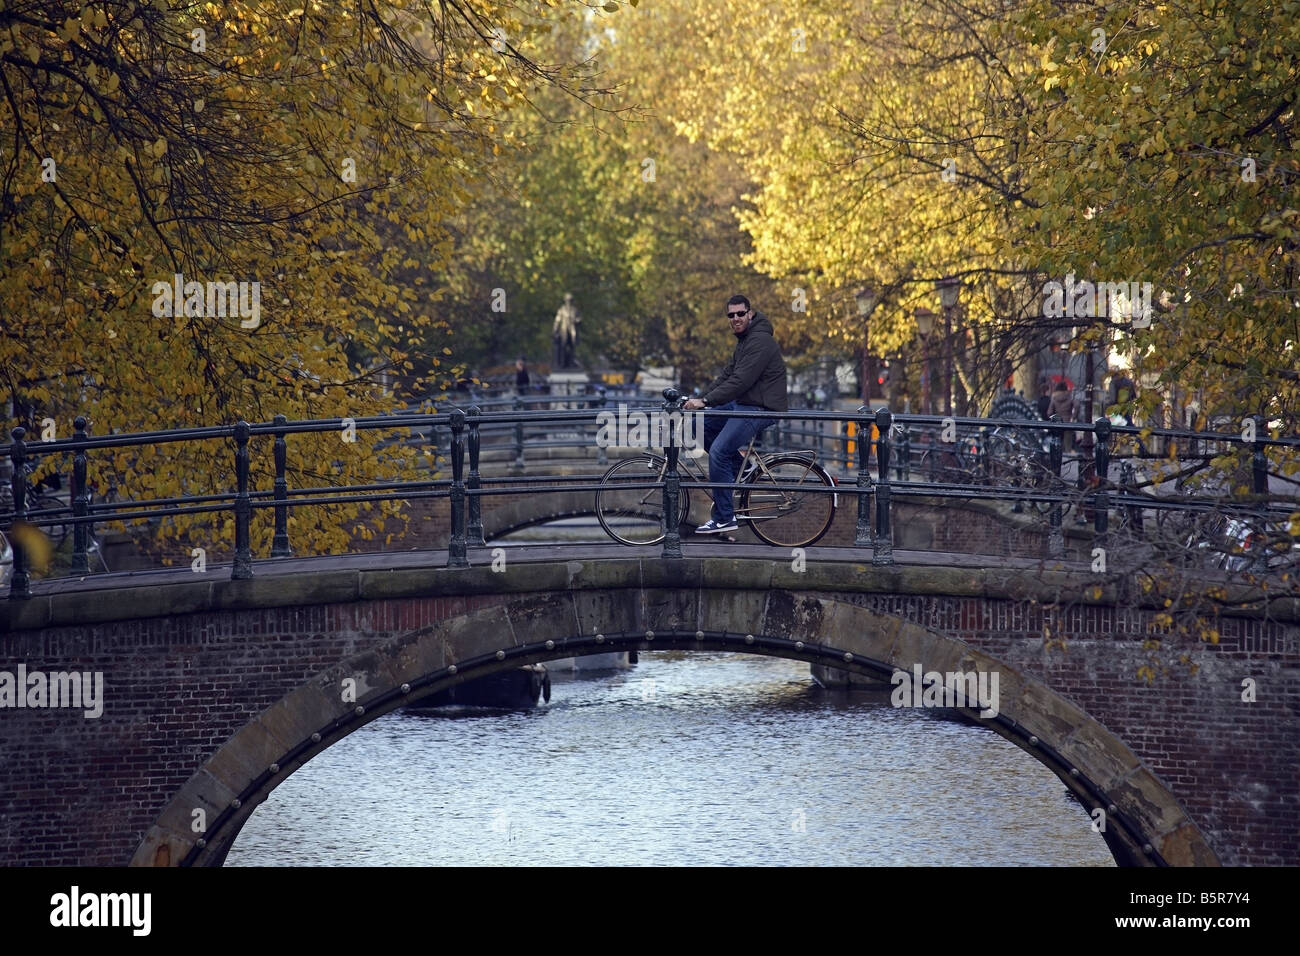 A cyclist driving over the bridge at the Prinsengracht, Amsterdam - Stock Image